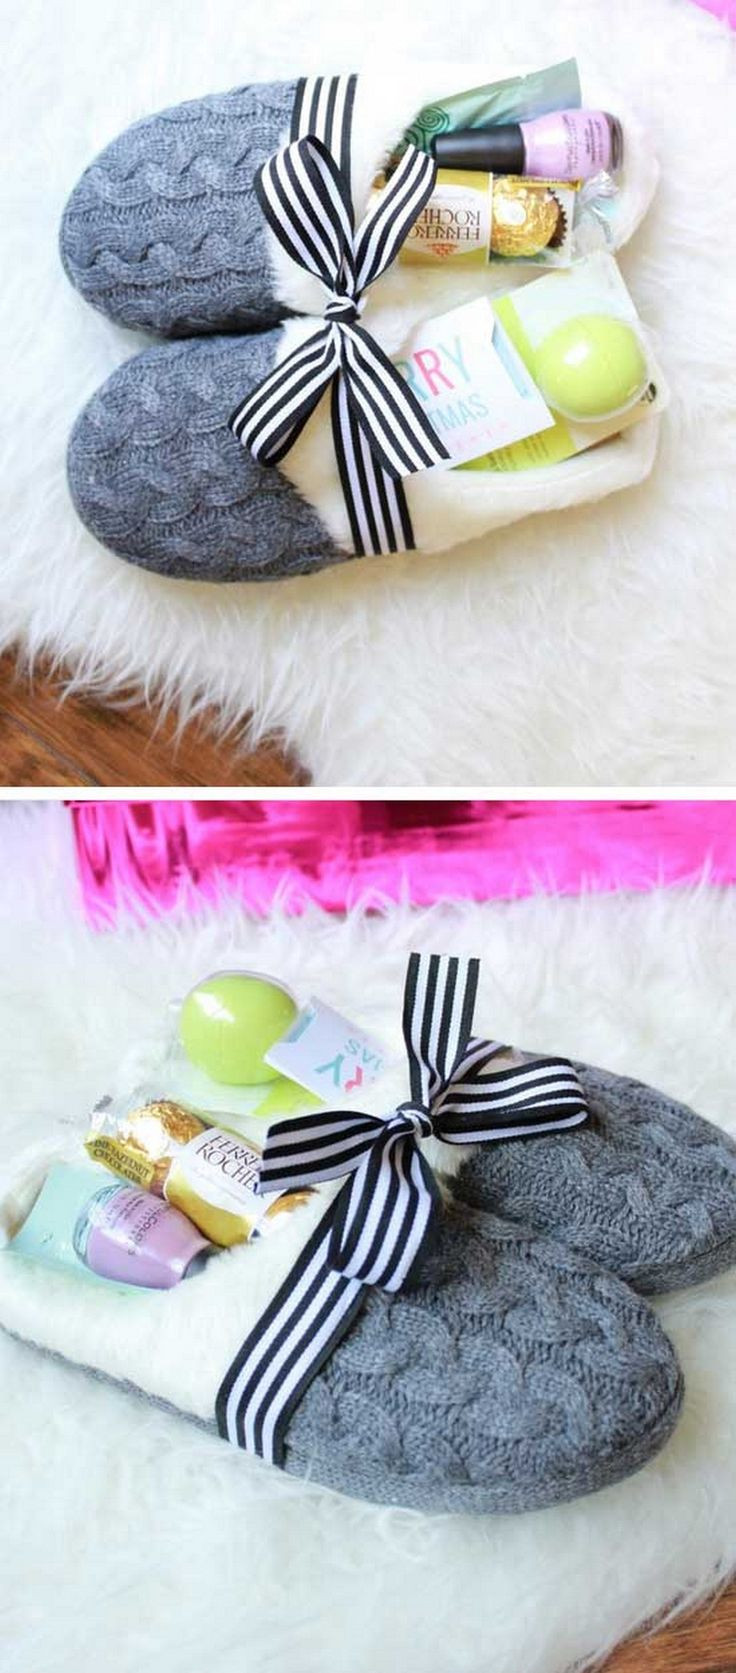 Best ideas about Diy Gift Ideas For Friend . Save or Pin Best 25 Diy best friend ts ideas on Pinterest Now.